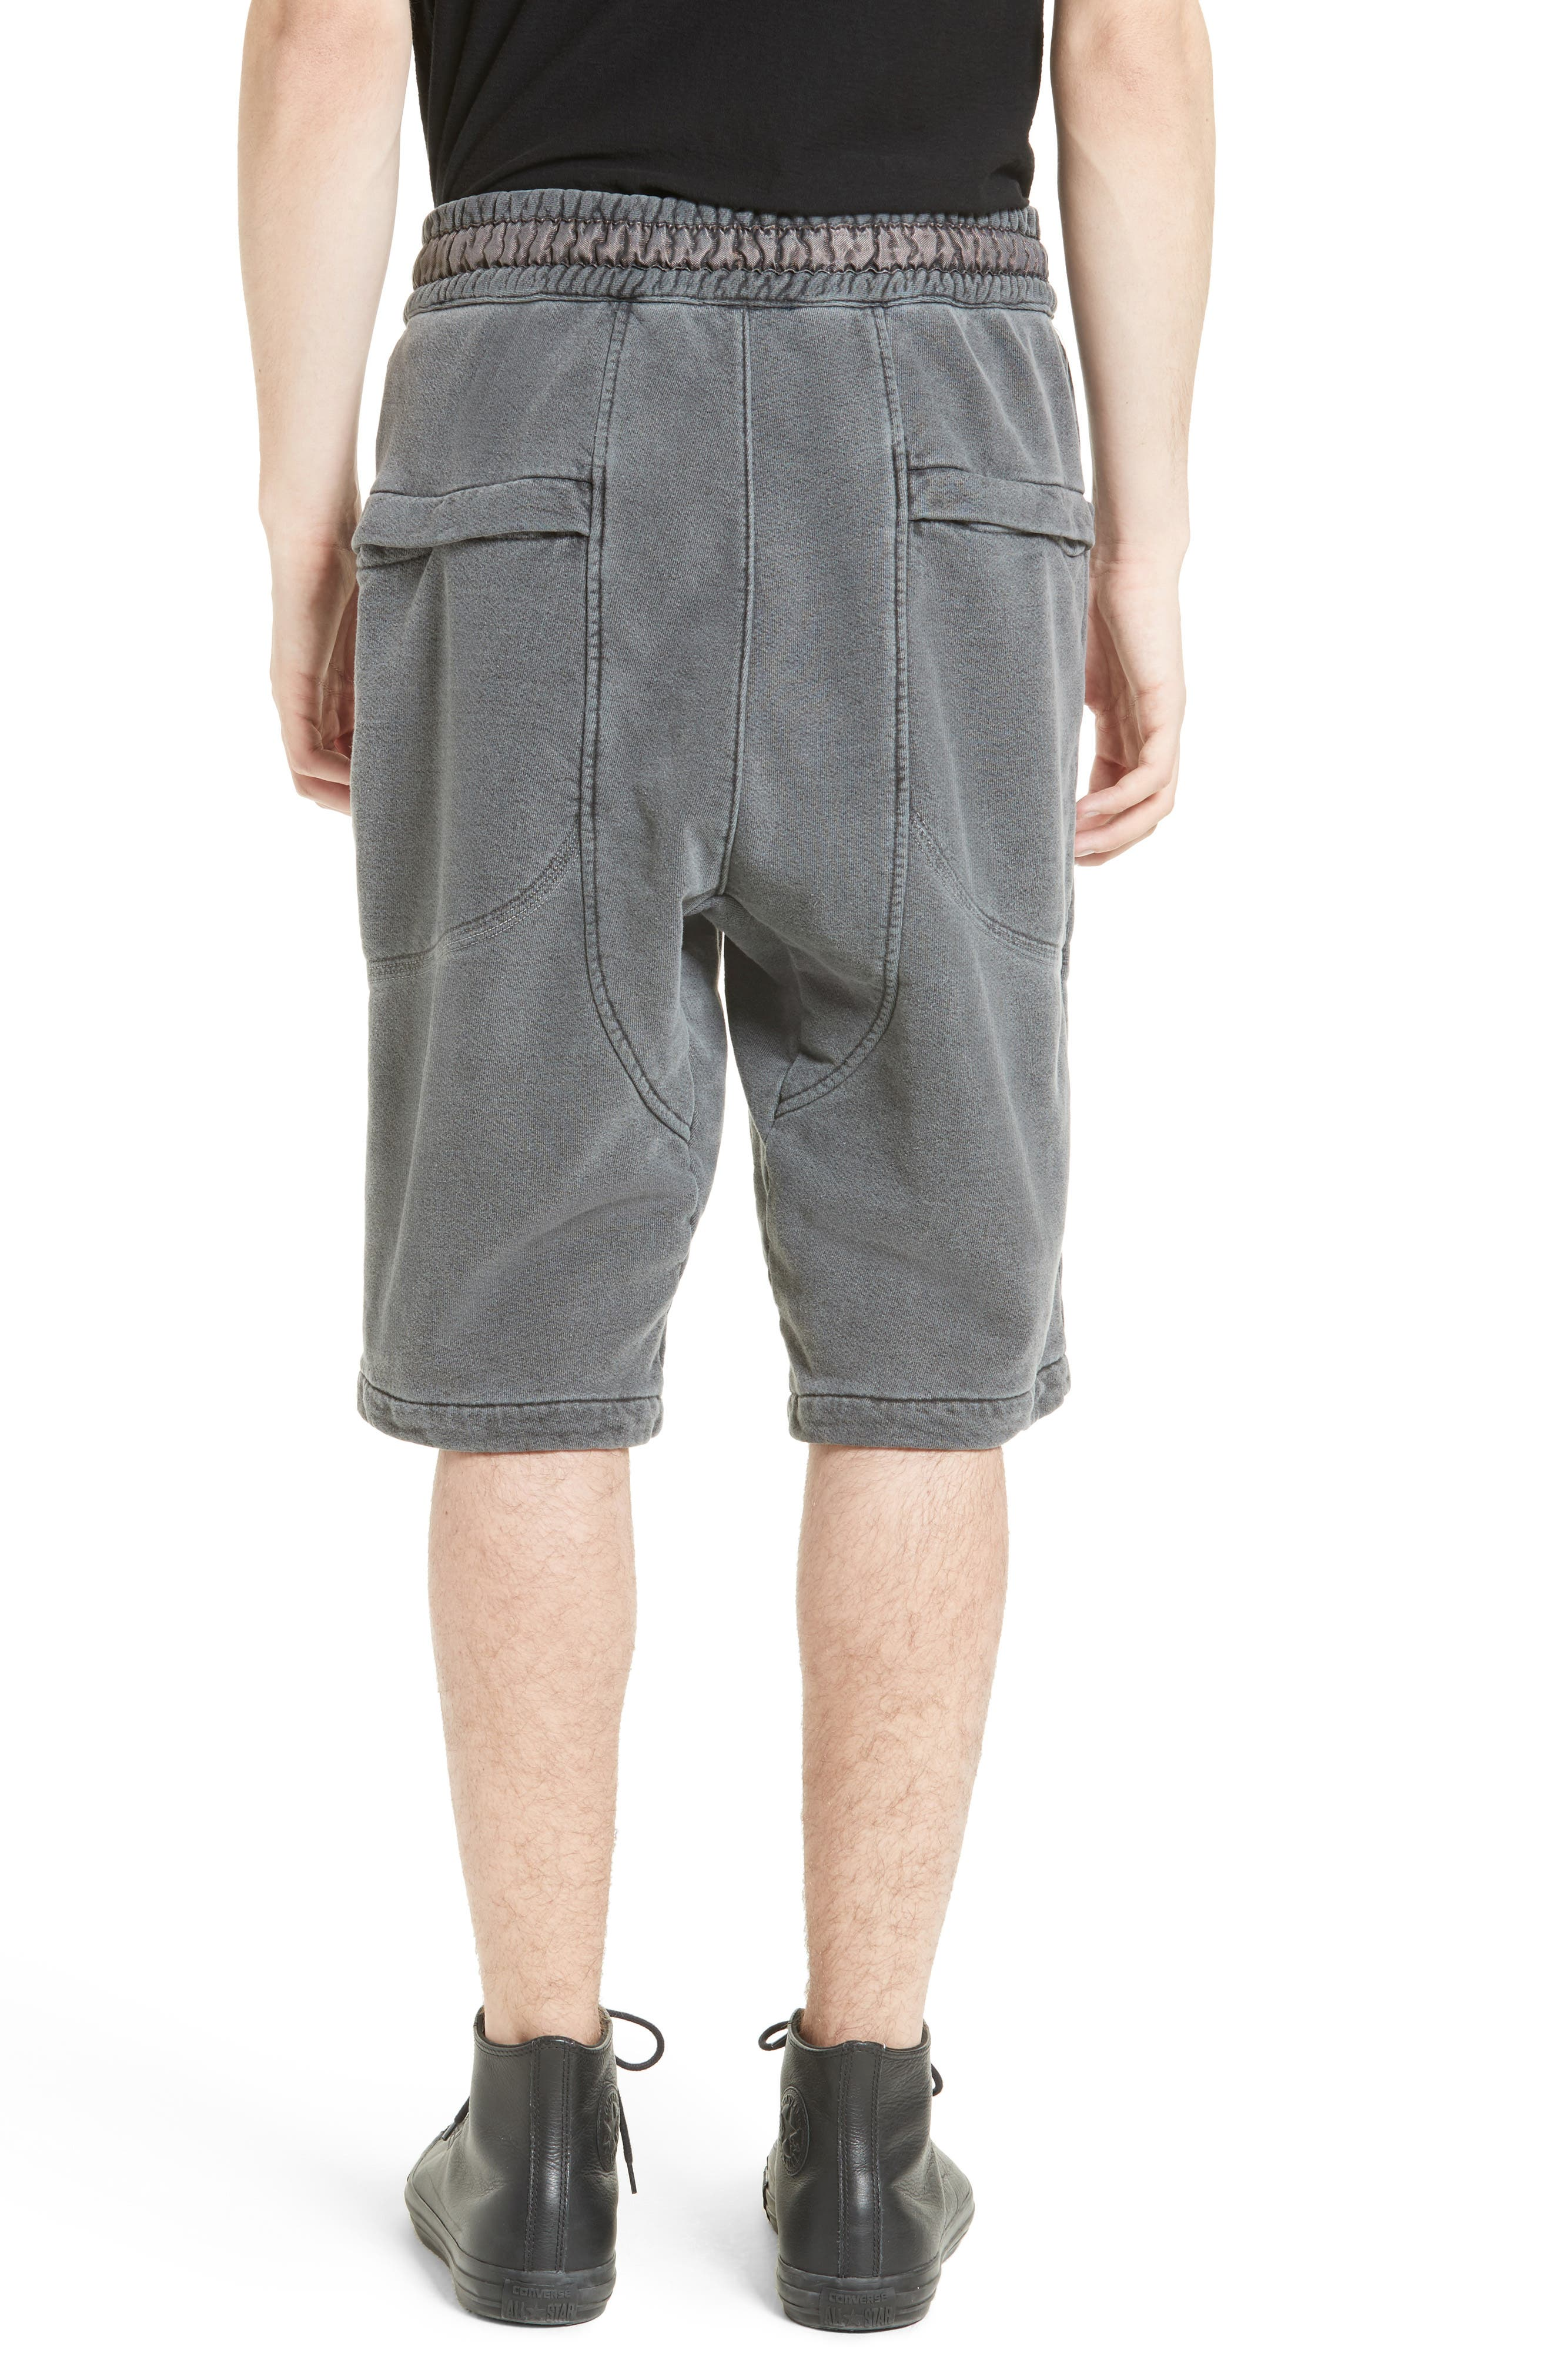 Quark Sweat Shorts,                             Alternate thumbnail 2, color,                             001